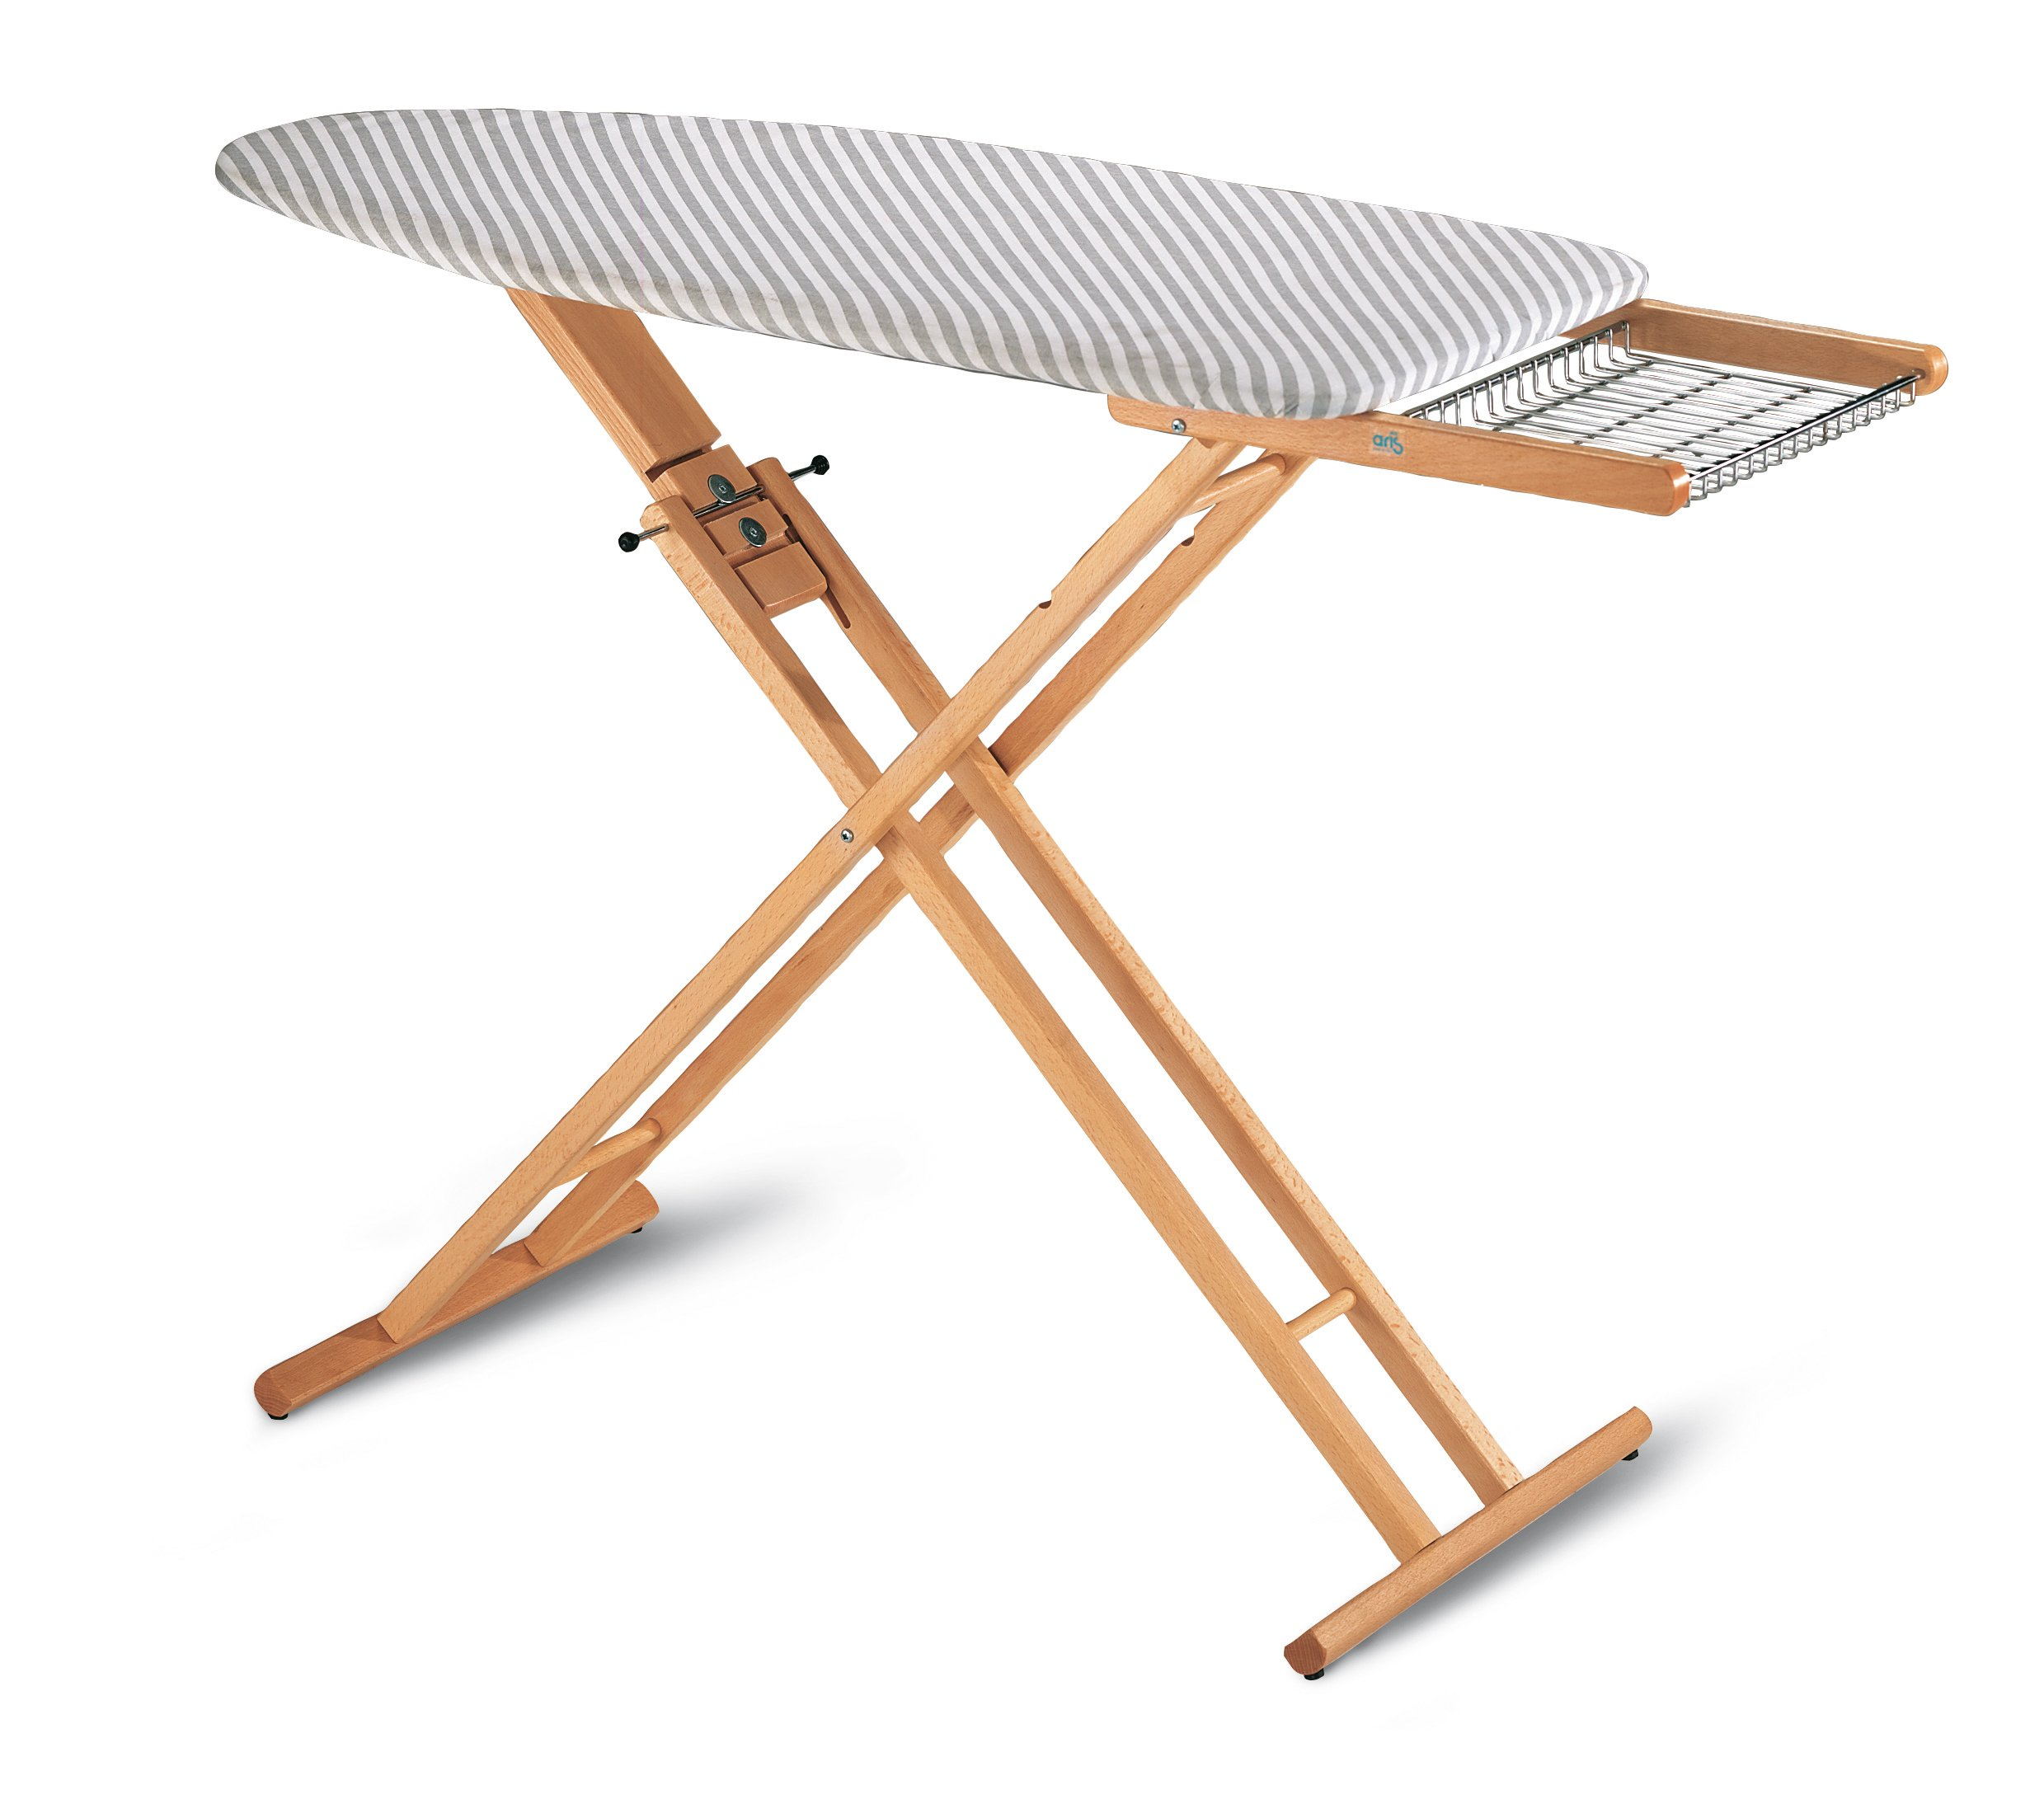 MULTISTIR - Folding and Portable Ironing Board in Solid Beech Wood - 3 Height Positions - Handcrafted in Italy - Natural Finish